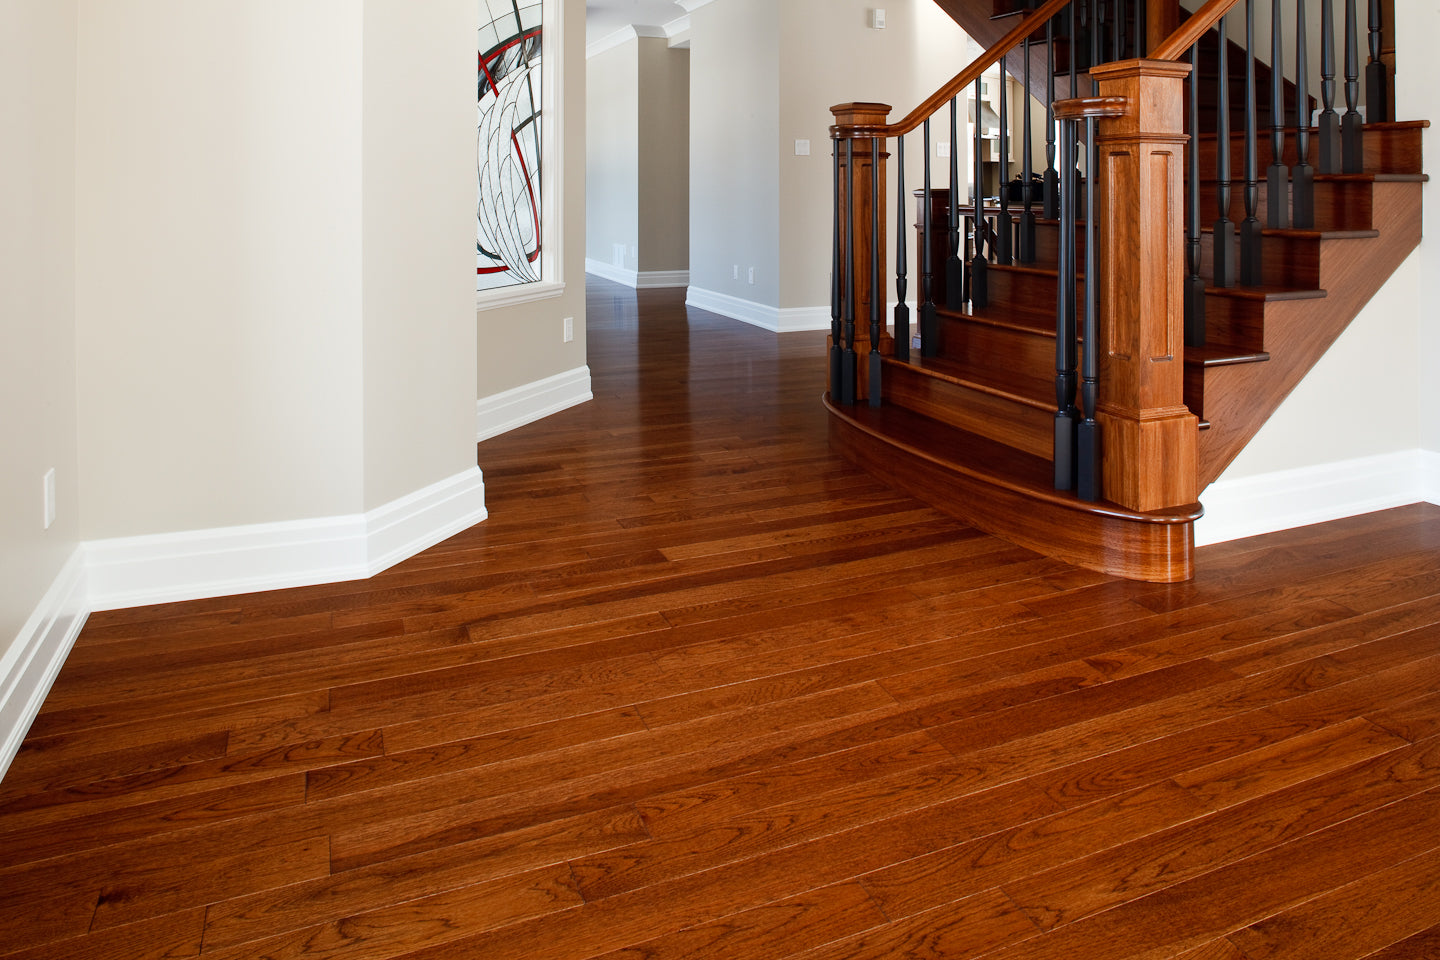 Hickory Brandon hardwood flooring by Gaylord Hardwood Flooring in Toronto